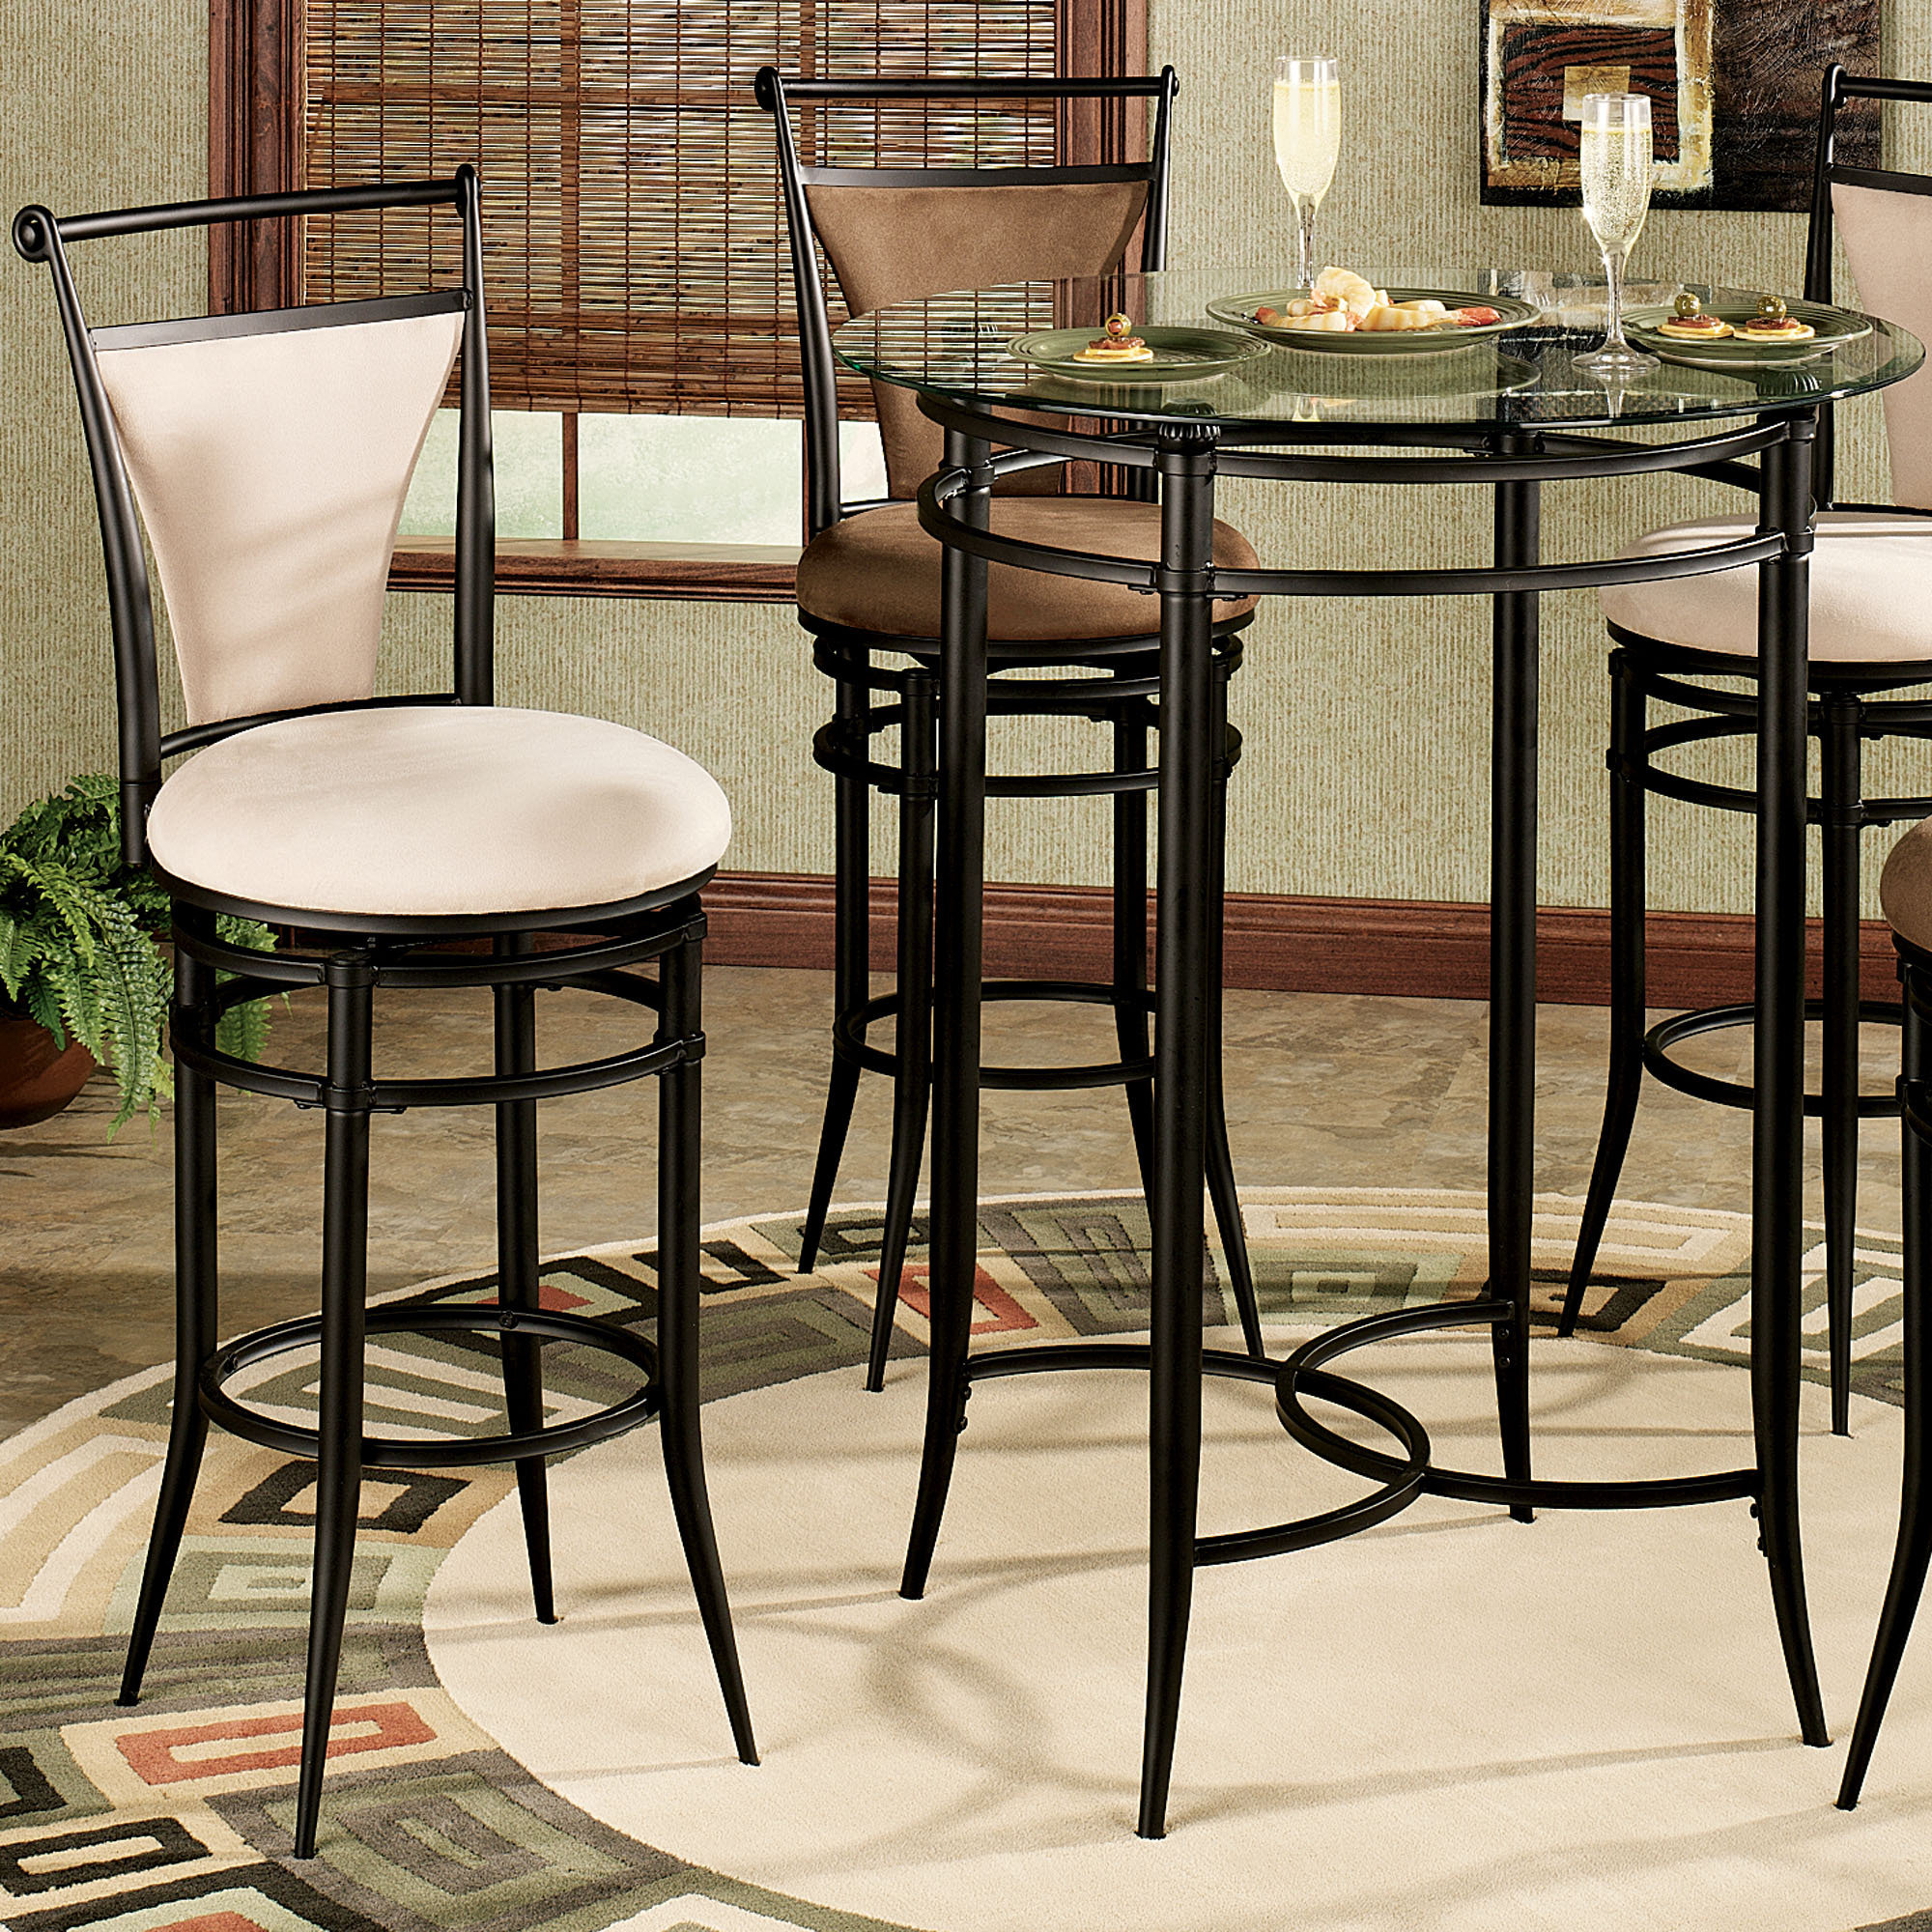 Amazing bistro table and chairs for home furniture ideas with outdoor bistro table and chairs